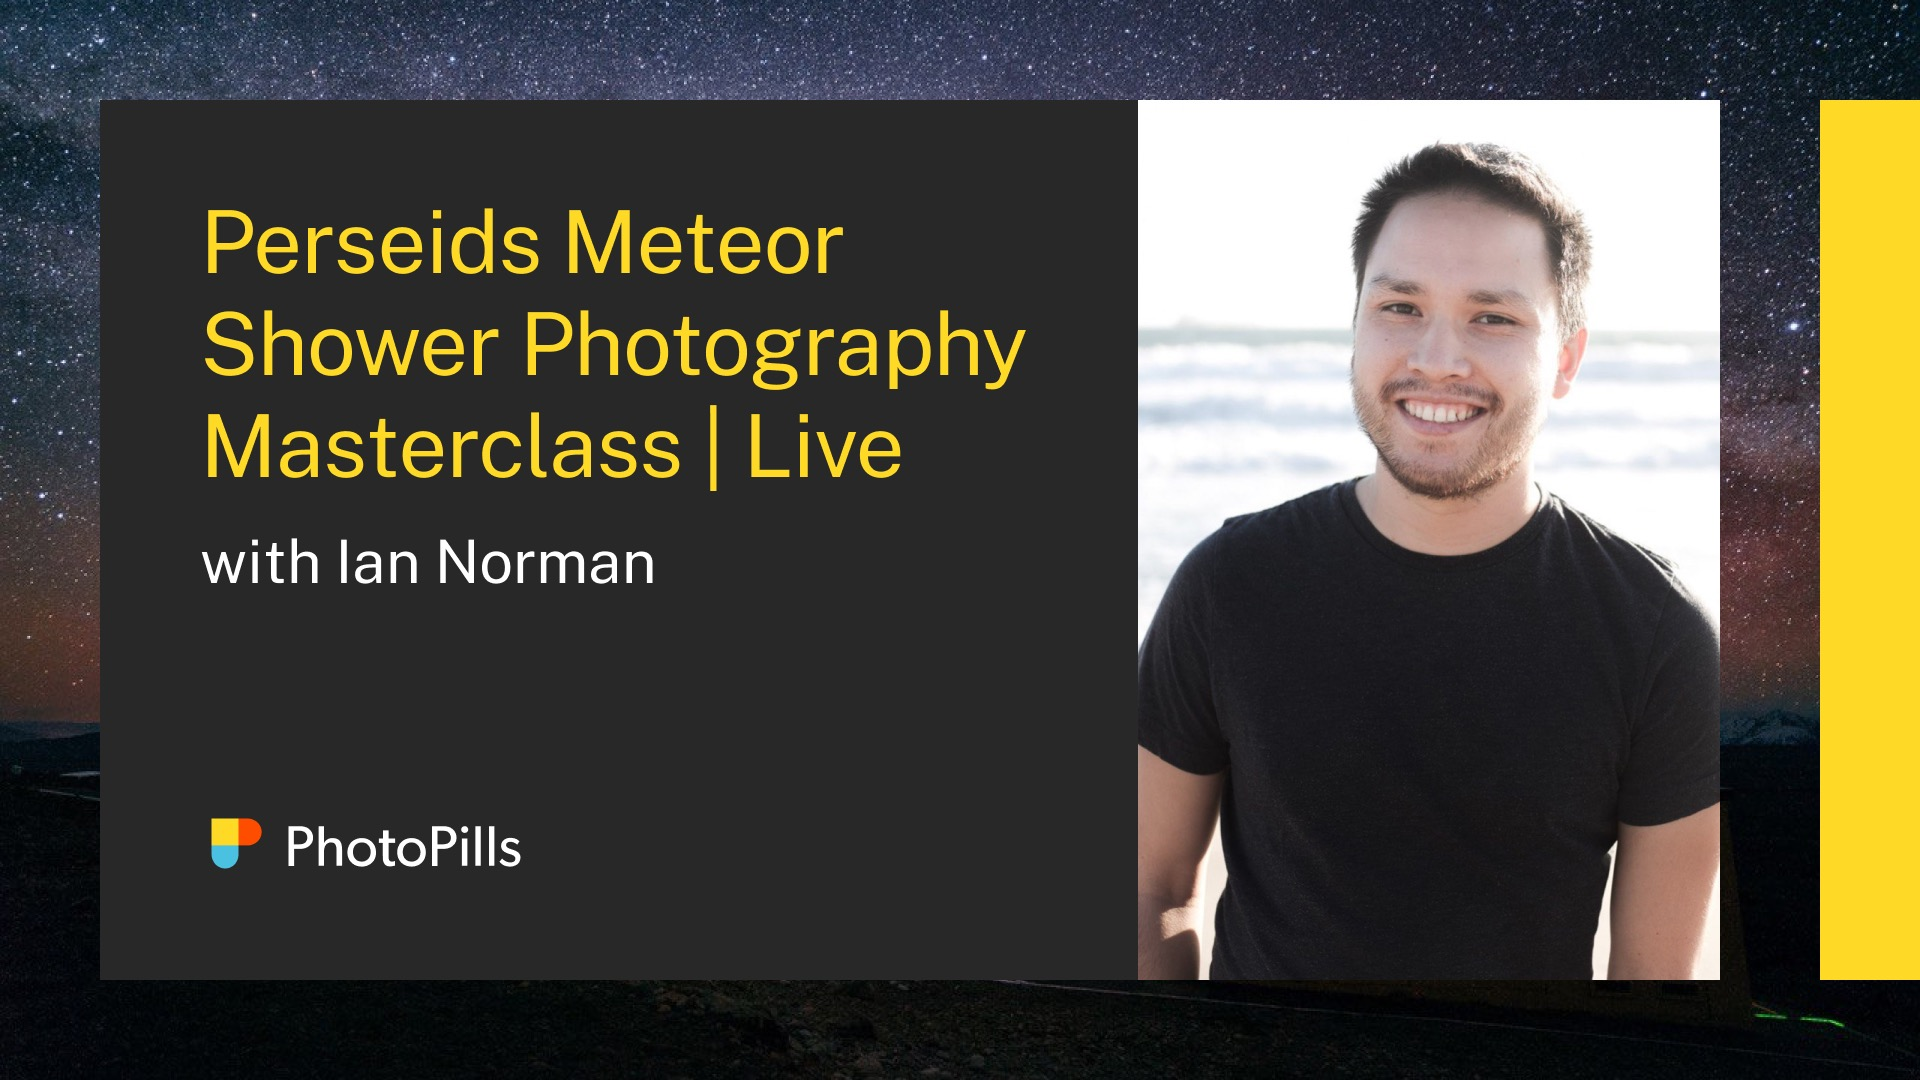 Announcing: Live Perseid Meteor Shower Photography Masterclass with PhotoPills